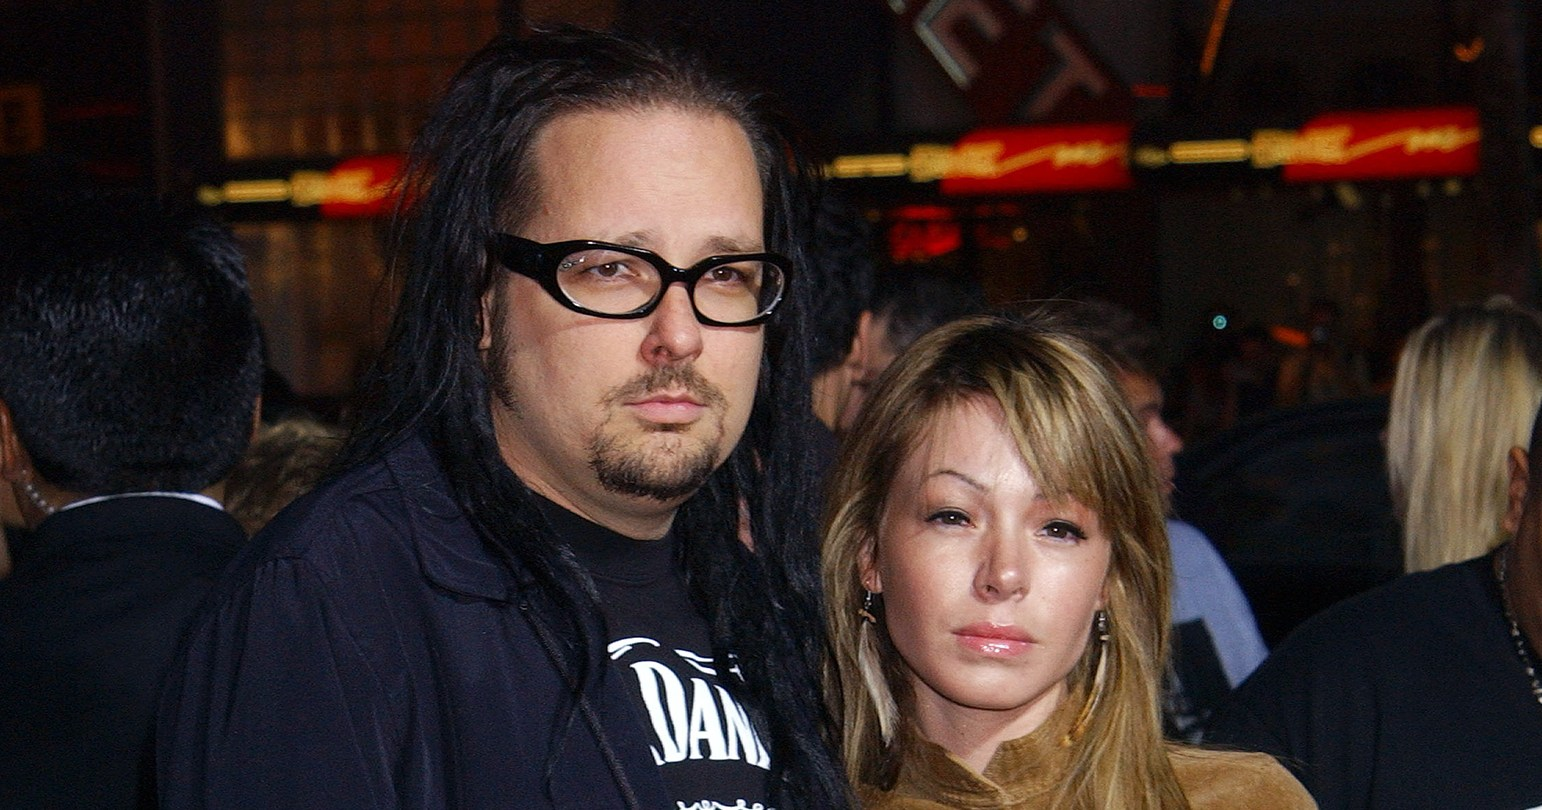 Korn Singer's Wife Died From Accidental Lethal Drug Combination